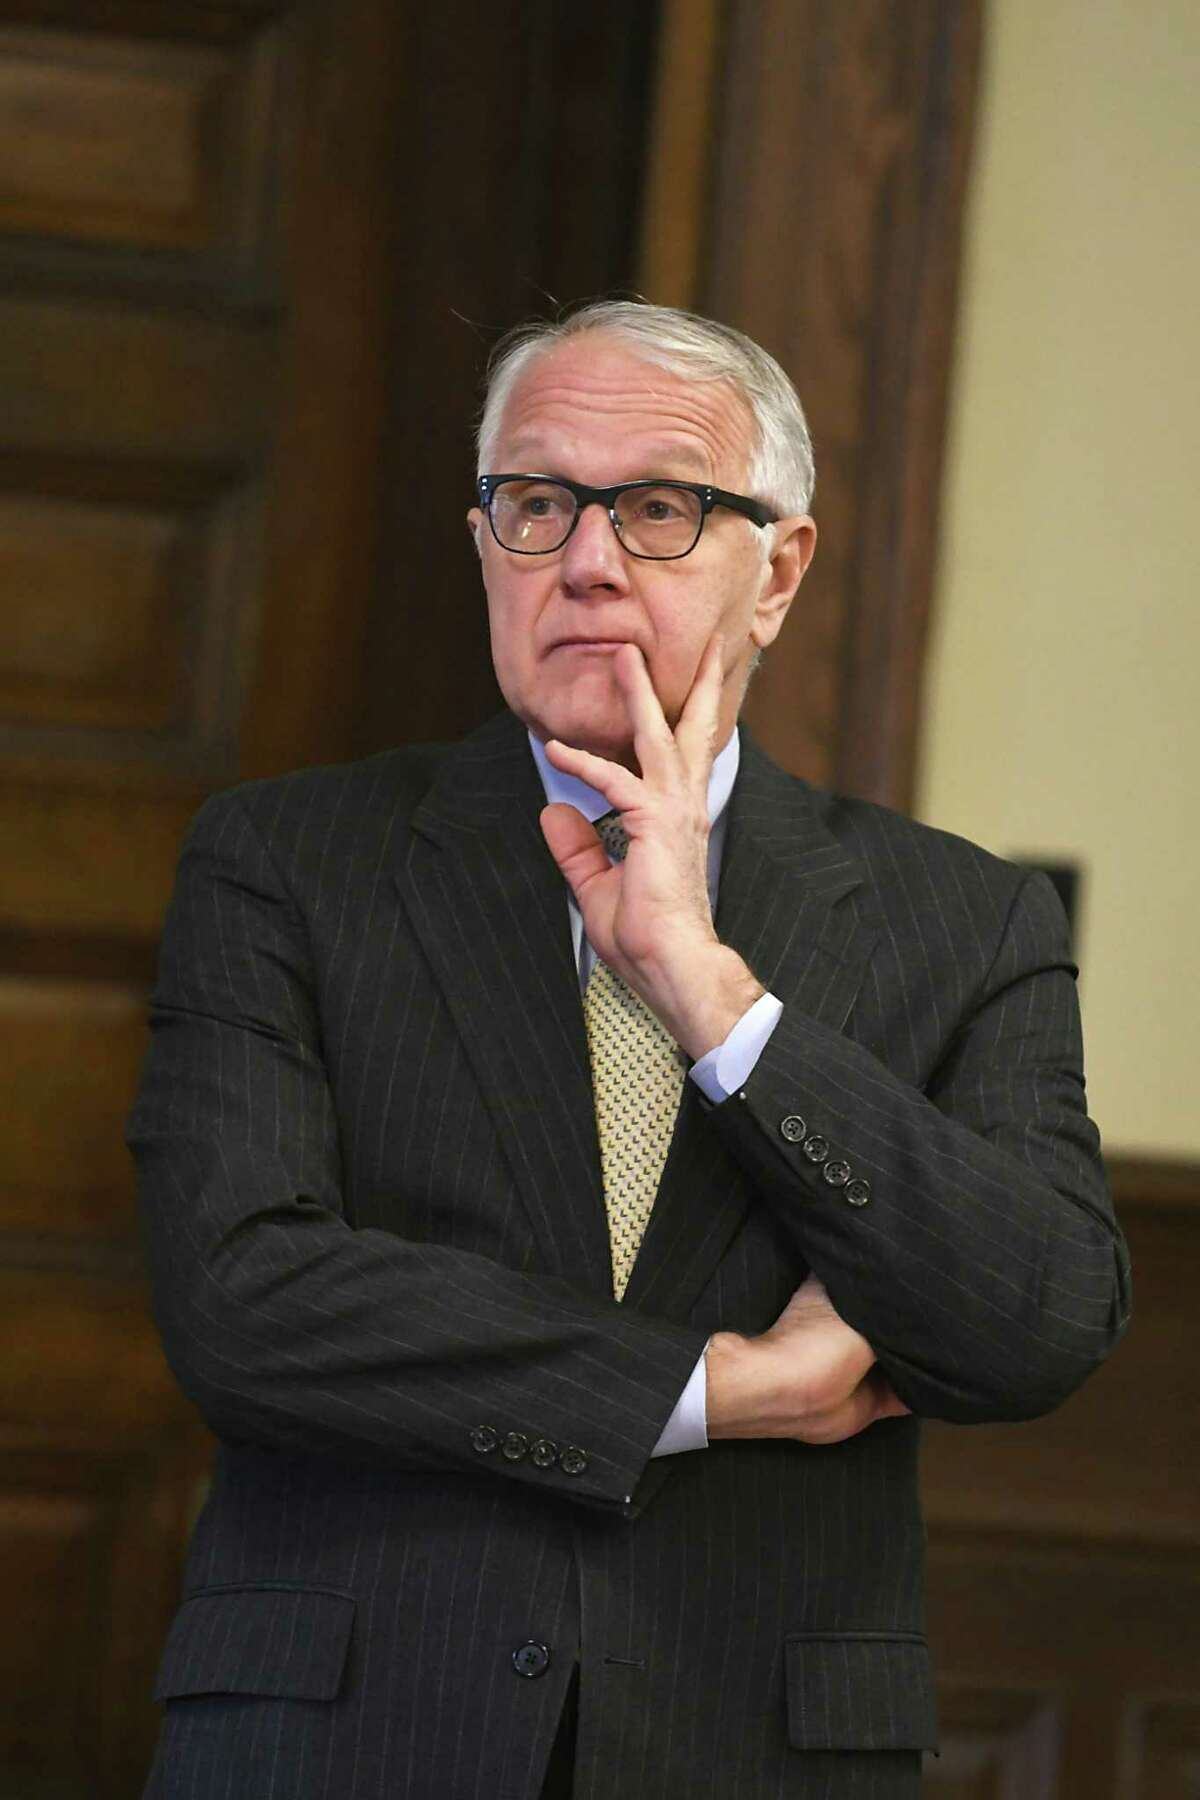 Special prosecutor Paul Czajka watches Albany County Court Judge Peter Lynch open a sealed indictment at the Rensselaer County Court House on Friday, Feb. 2, 2018 in Troy, N.Y. (Lori Van Buren/Times Union)